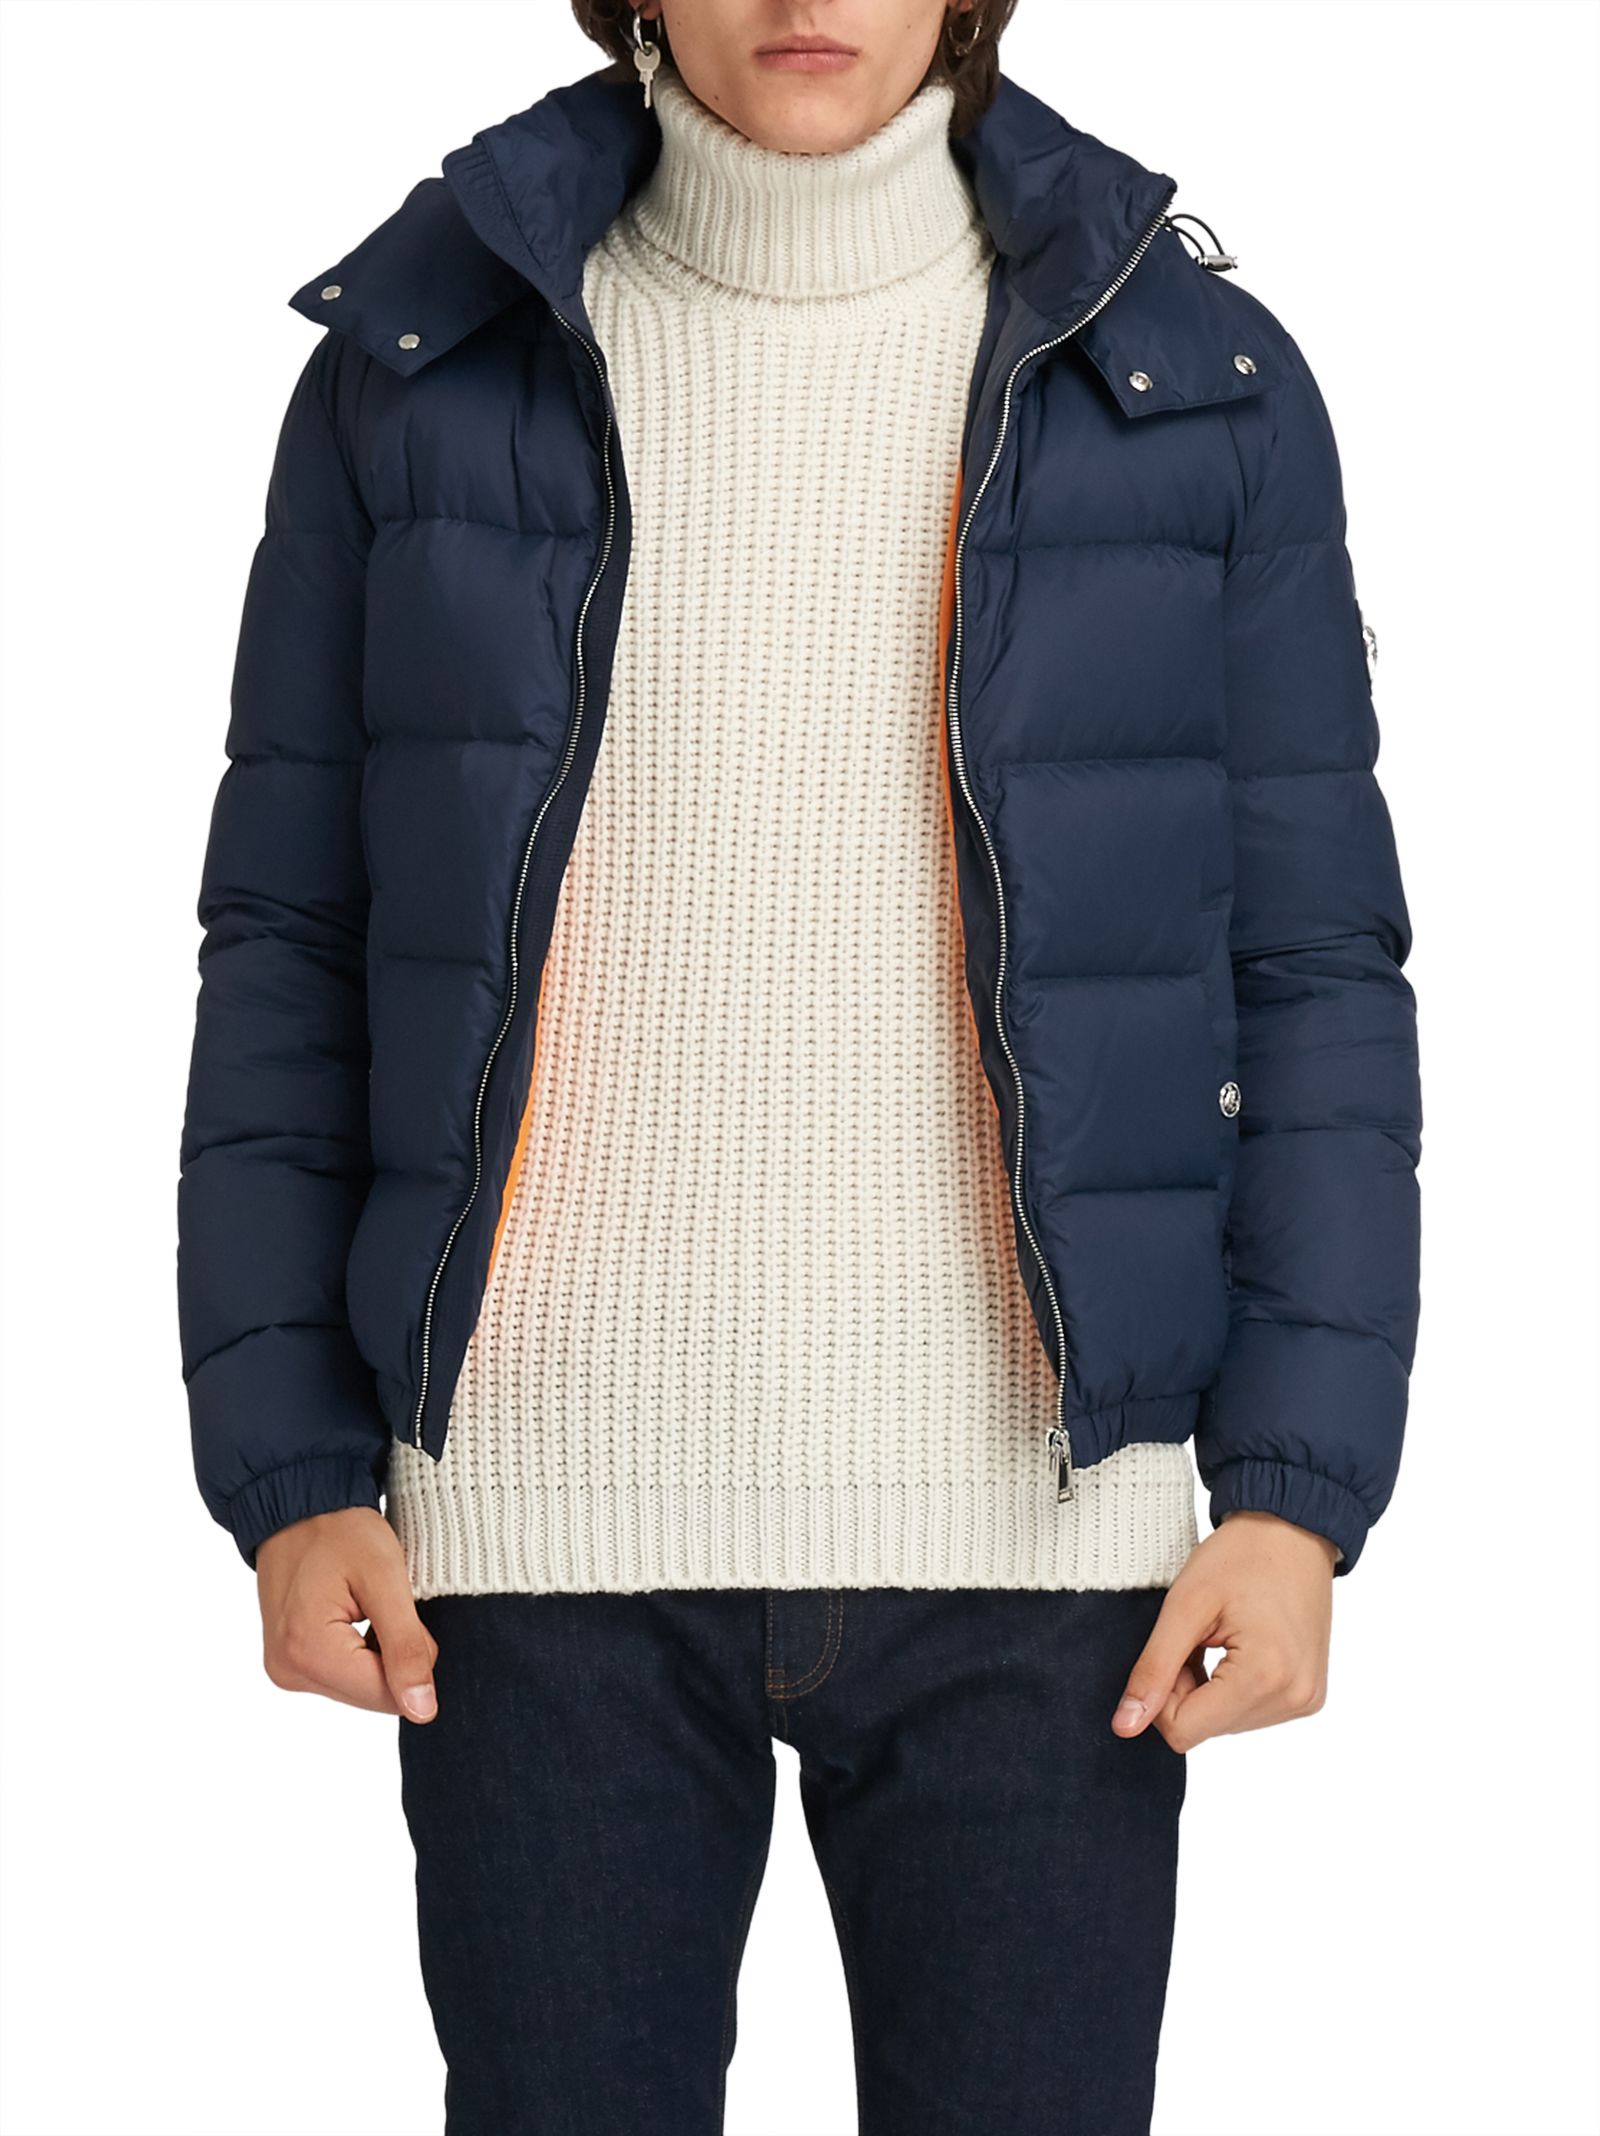 Gianni Versace Navy Quilted Jacket 9310545